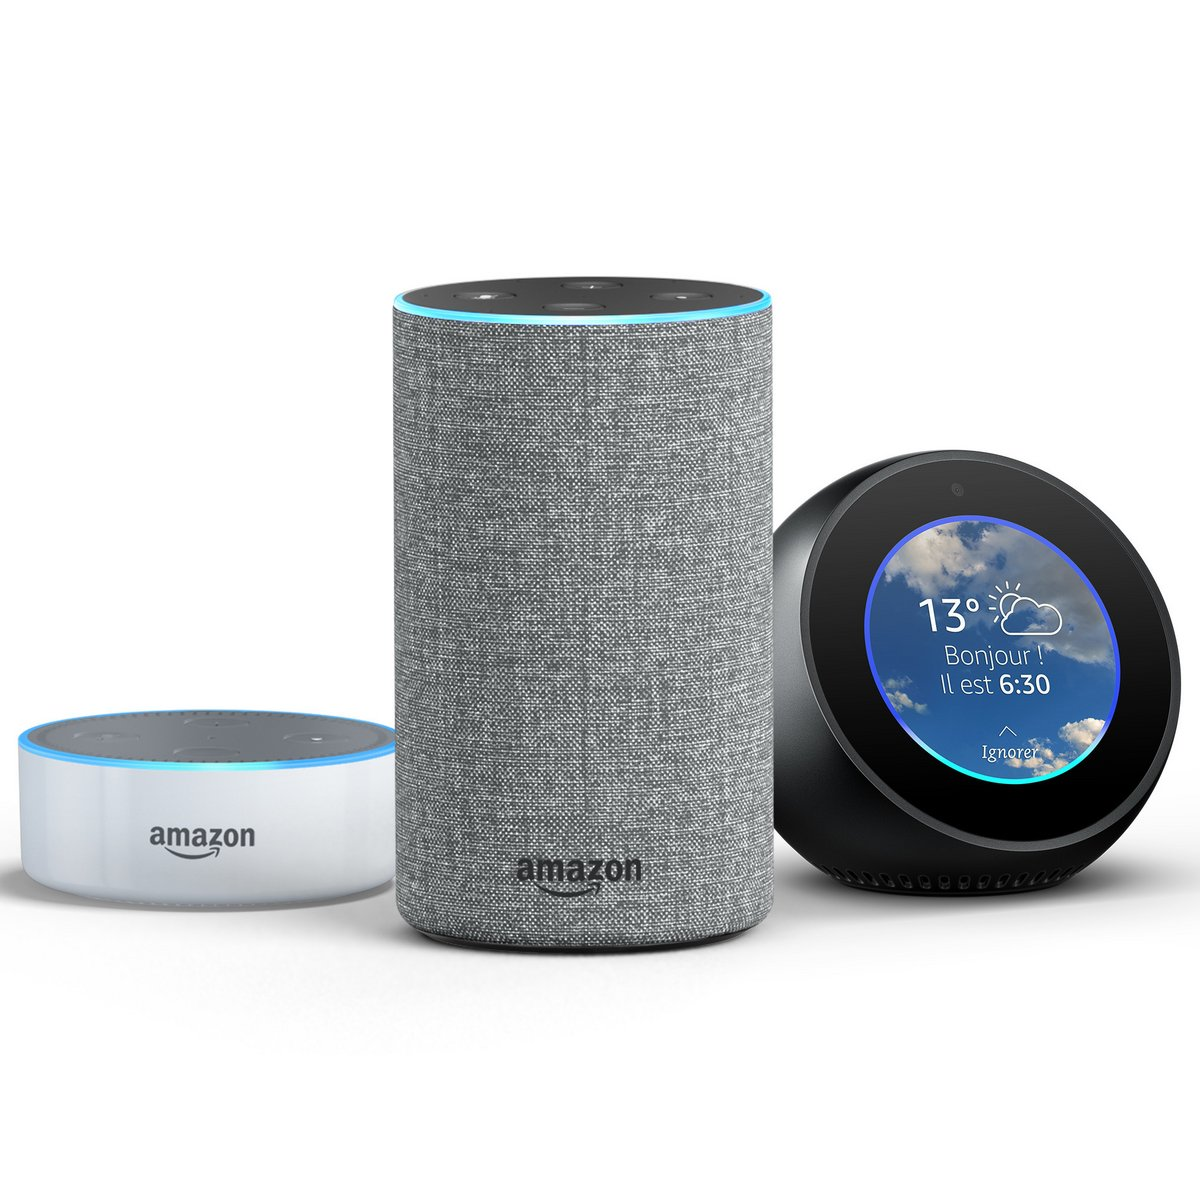 Amazon Echo famille.jpg_cropped_2031x2031